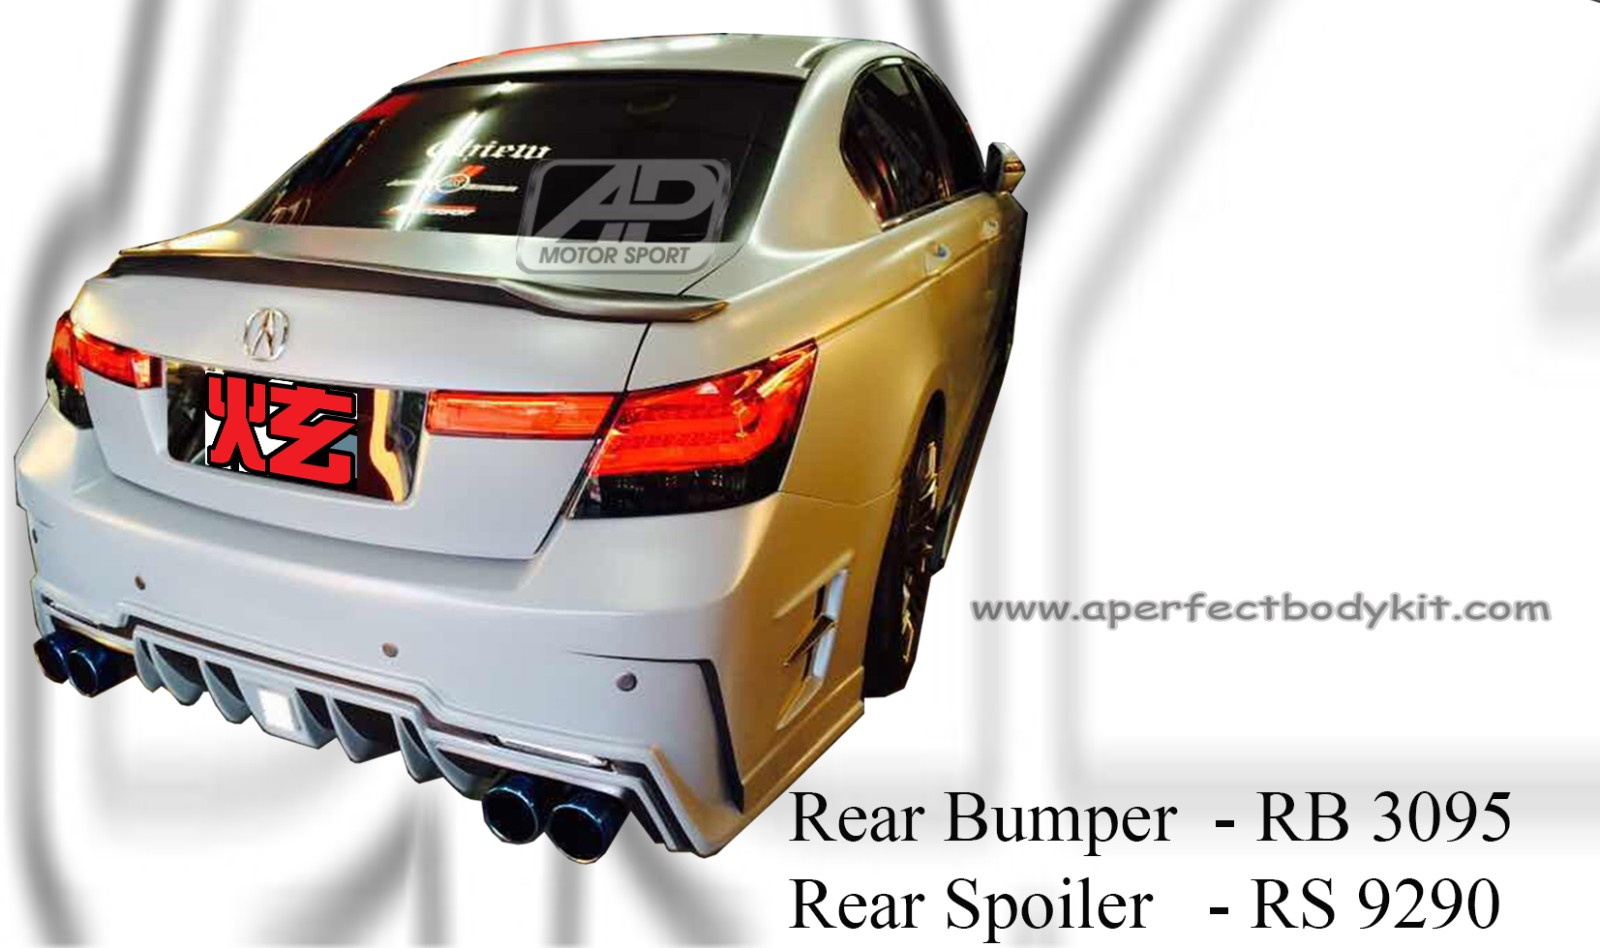 Honda Accord 2011 Rear Bumper & Rear Spoiler